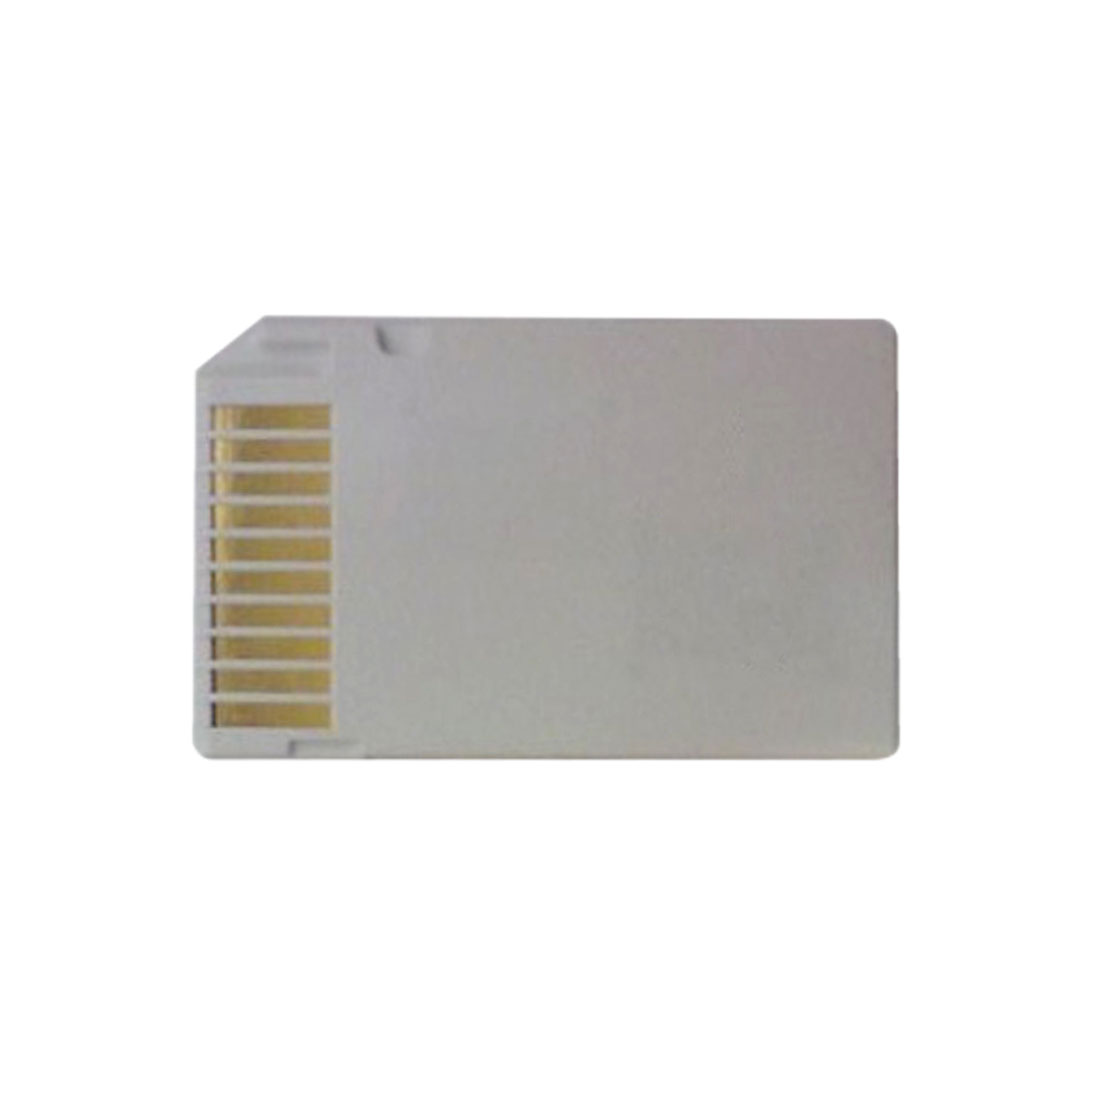 Image 5 - NOYOKERE Memory Card Adapter 2 microSD/micro SD Card Reader Adapter Micro SD TF to Memory Stick MS Pro Duo for PSP Card White-in Card Readers from Computer & Office